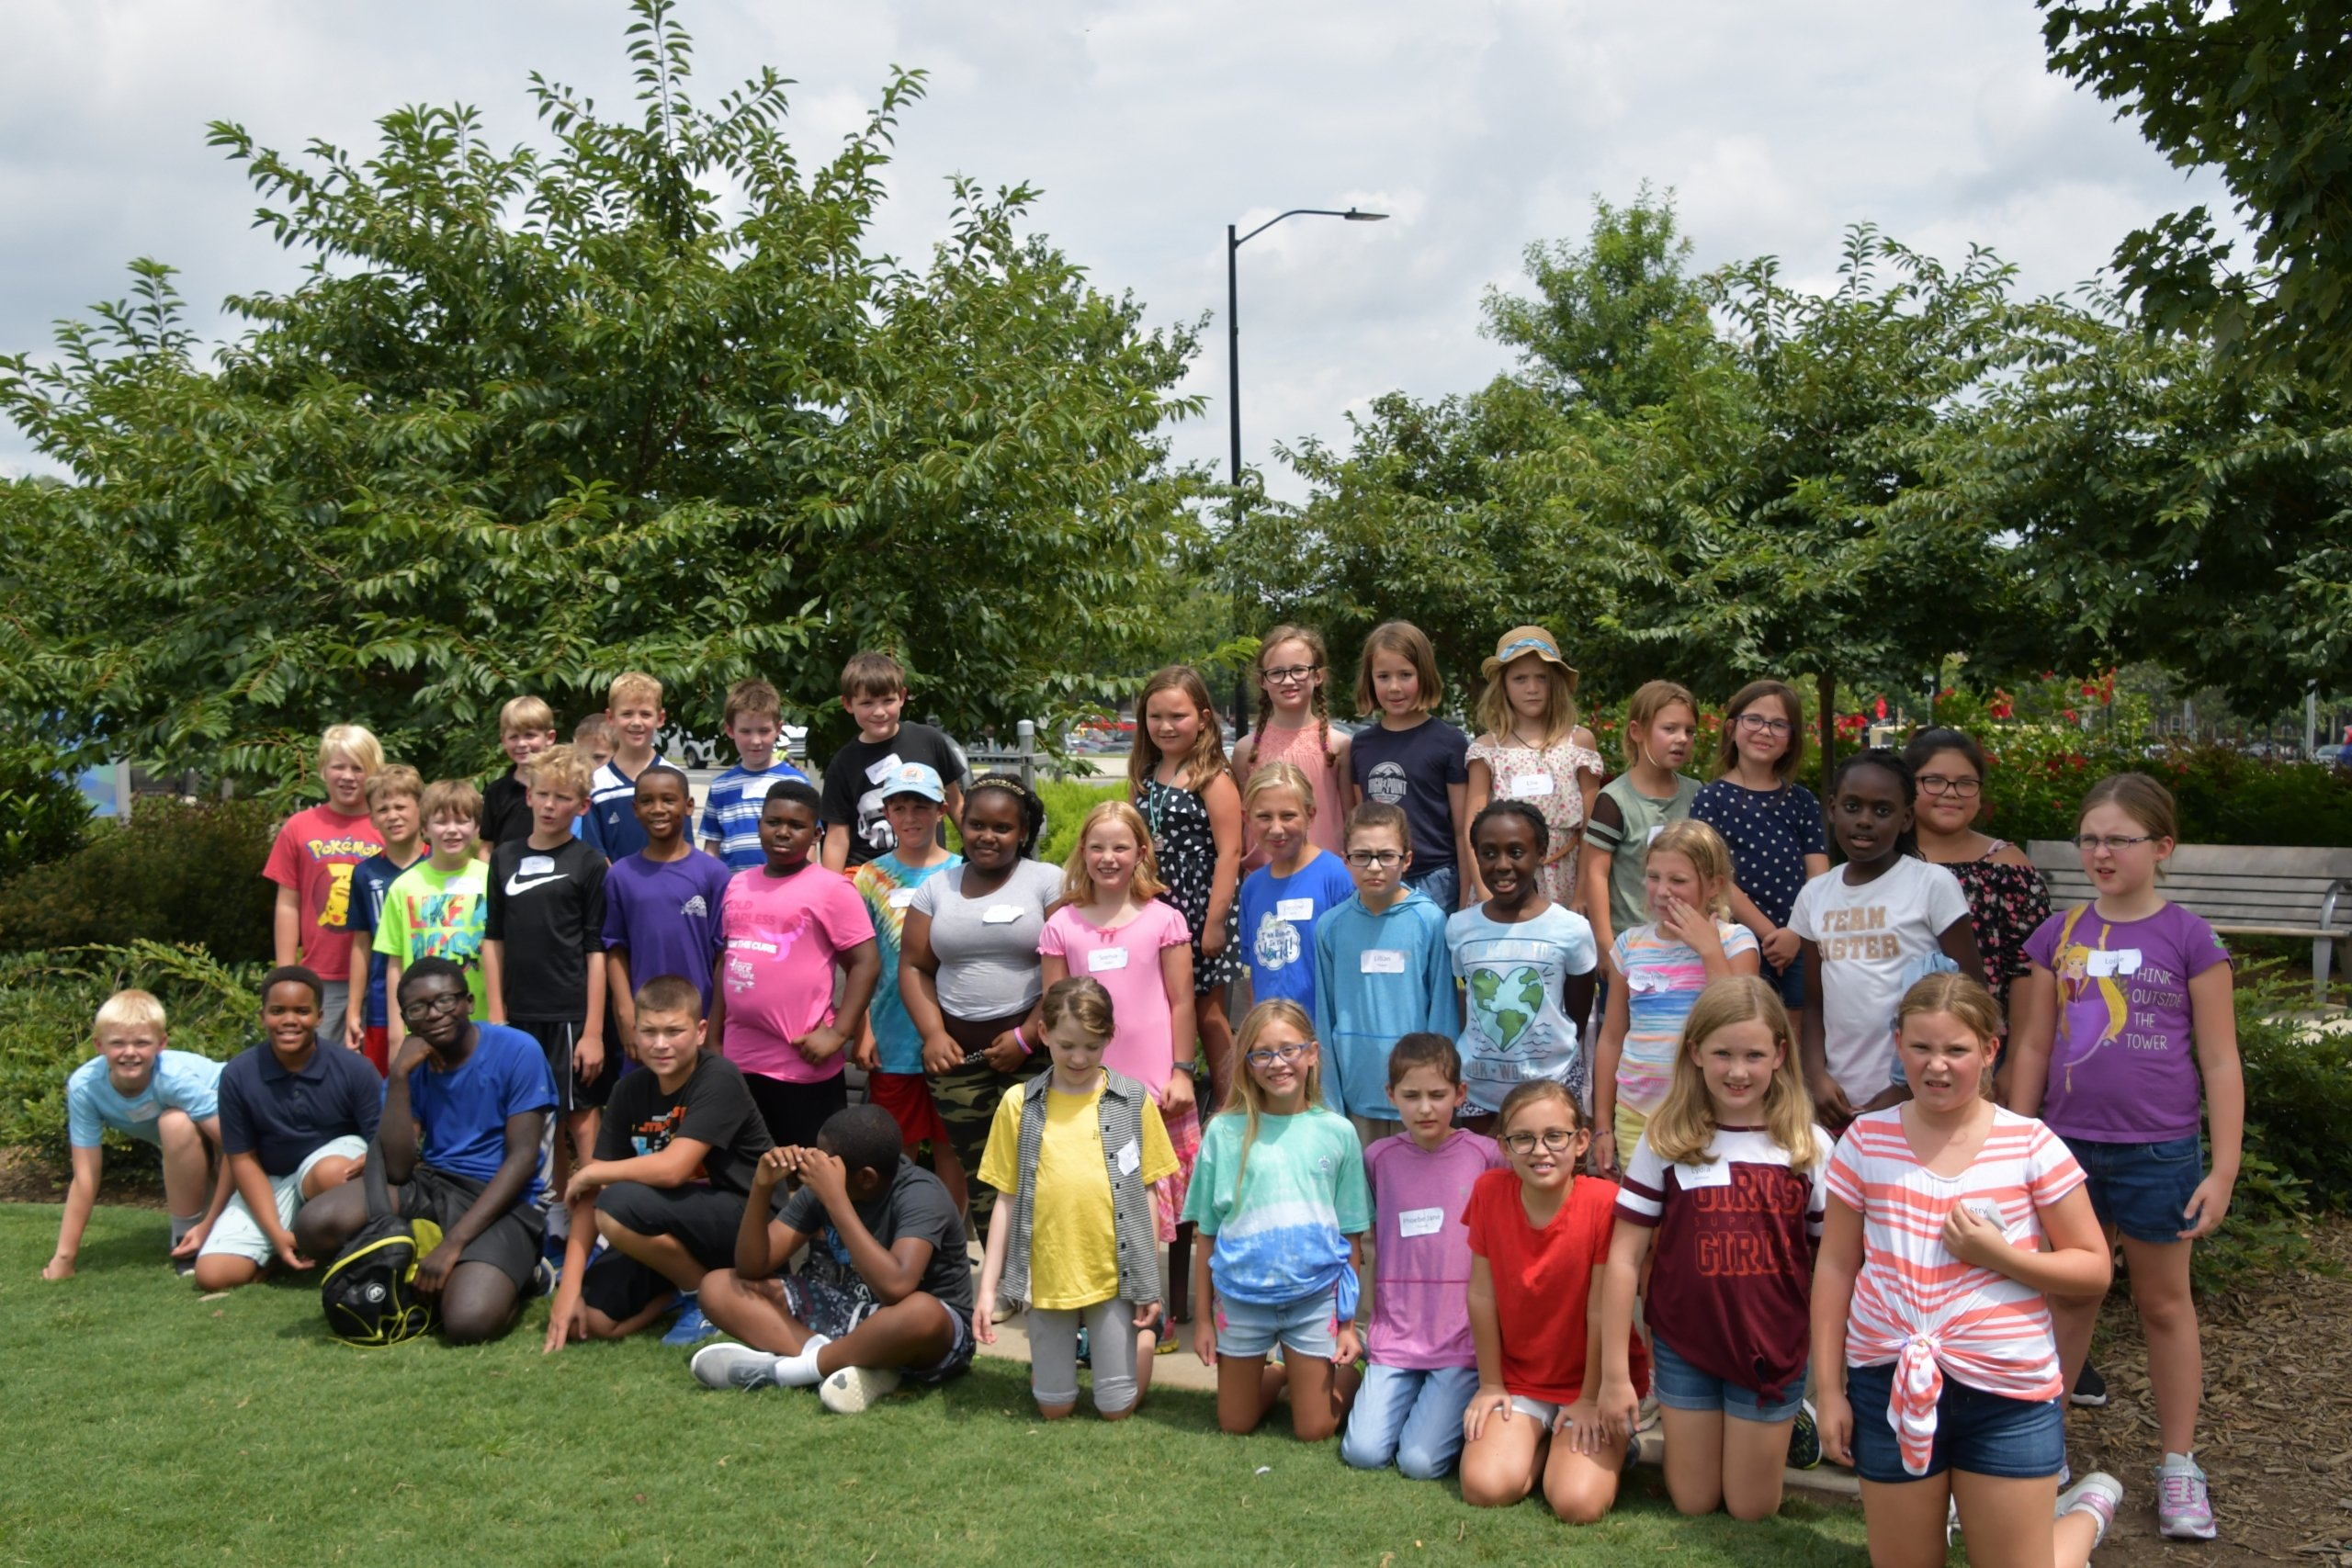 When you audition for our children's choir, you join a community of singers, seen here at Choir Camp in the summer. Open auditions help us find talented singers for our children's choir in Charlotte, NC near me